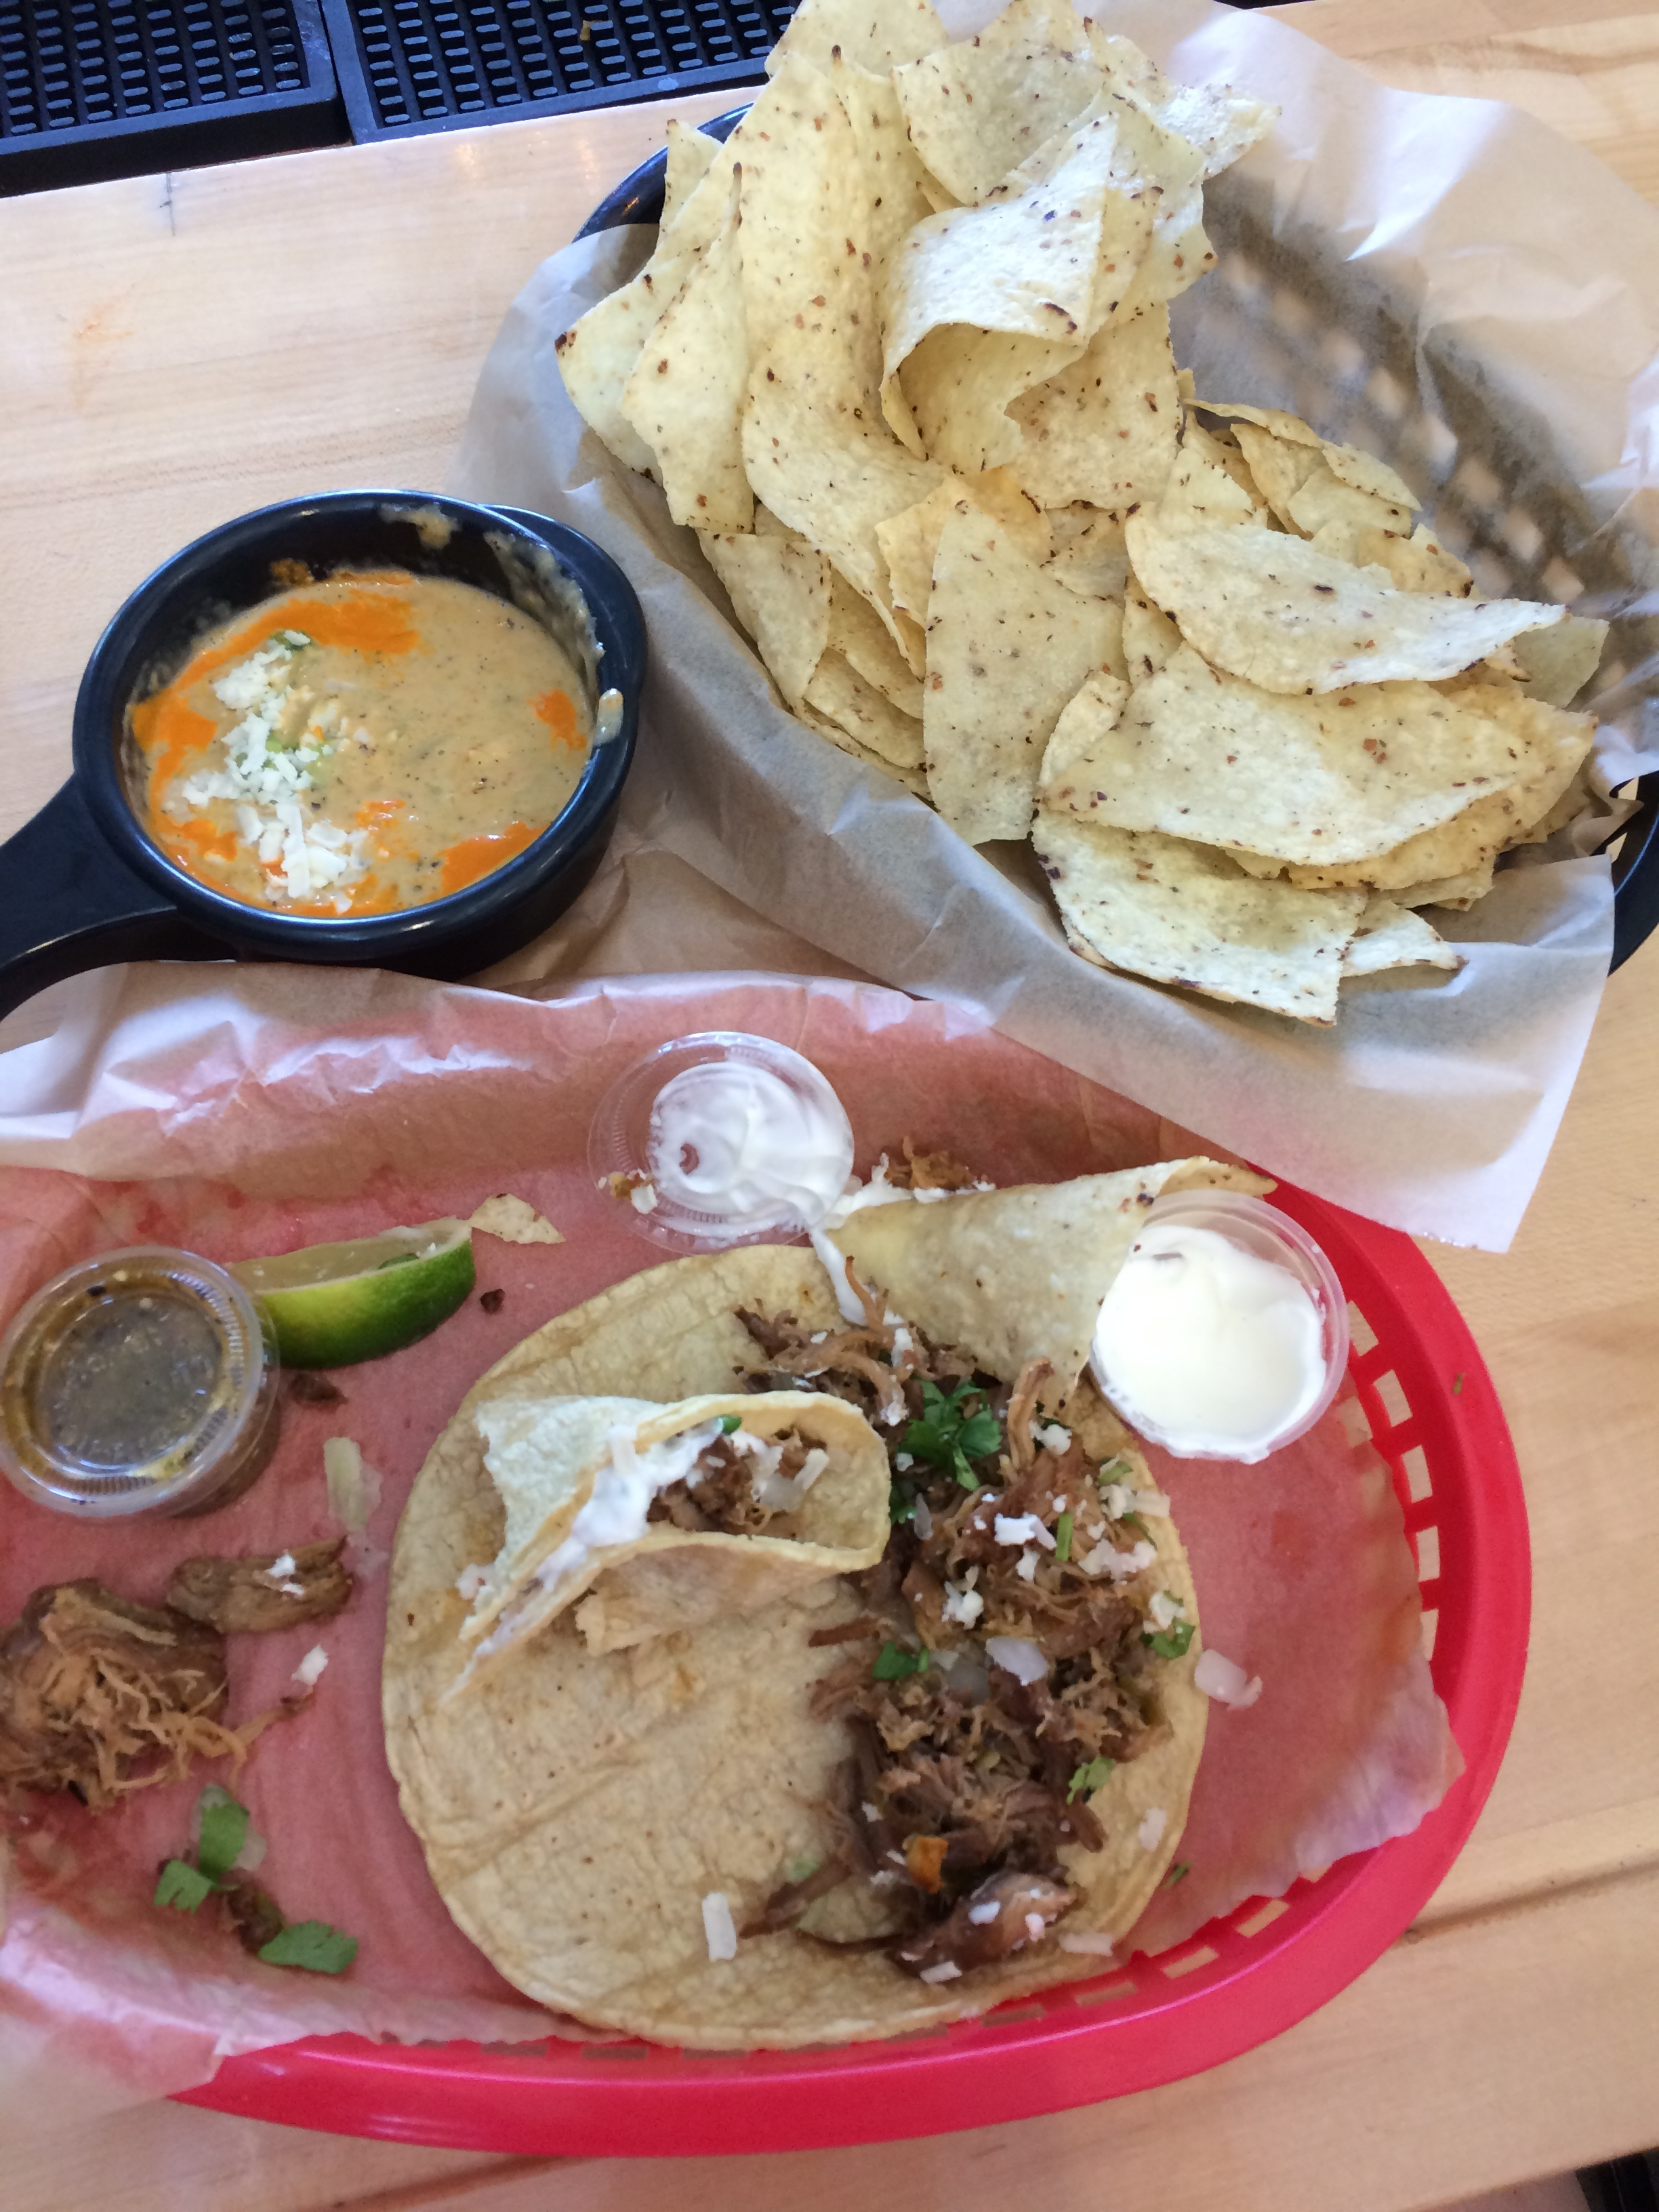 Torchy's Tacos - This was a recommendation from my Uber driver, but Oh My Goodness, was it delicious! The queso was amazing and definitely worth all the hype! I ended up picking the green chile pork taco and it was so good! I'm normally a traditionalist when it comes to my tacos - ground beef, lettuce, tomato, cheese, and sour cream, but these had such great flavor and the pork was perfectly cooked! HIGHLY RECOMMEND the South Congress location too, since its so close to everything!